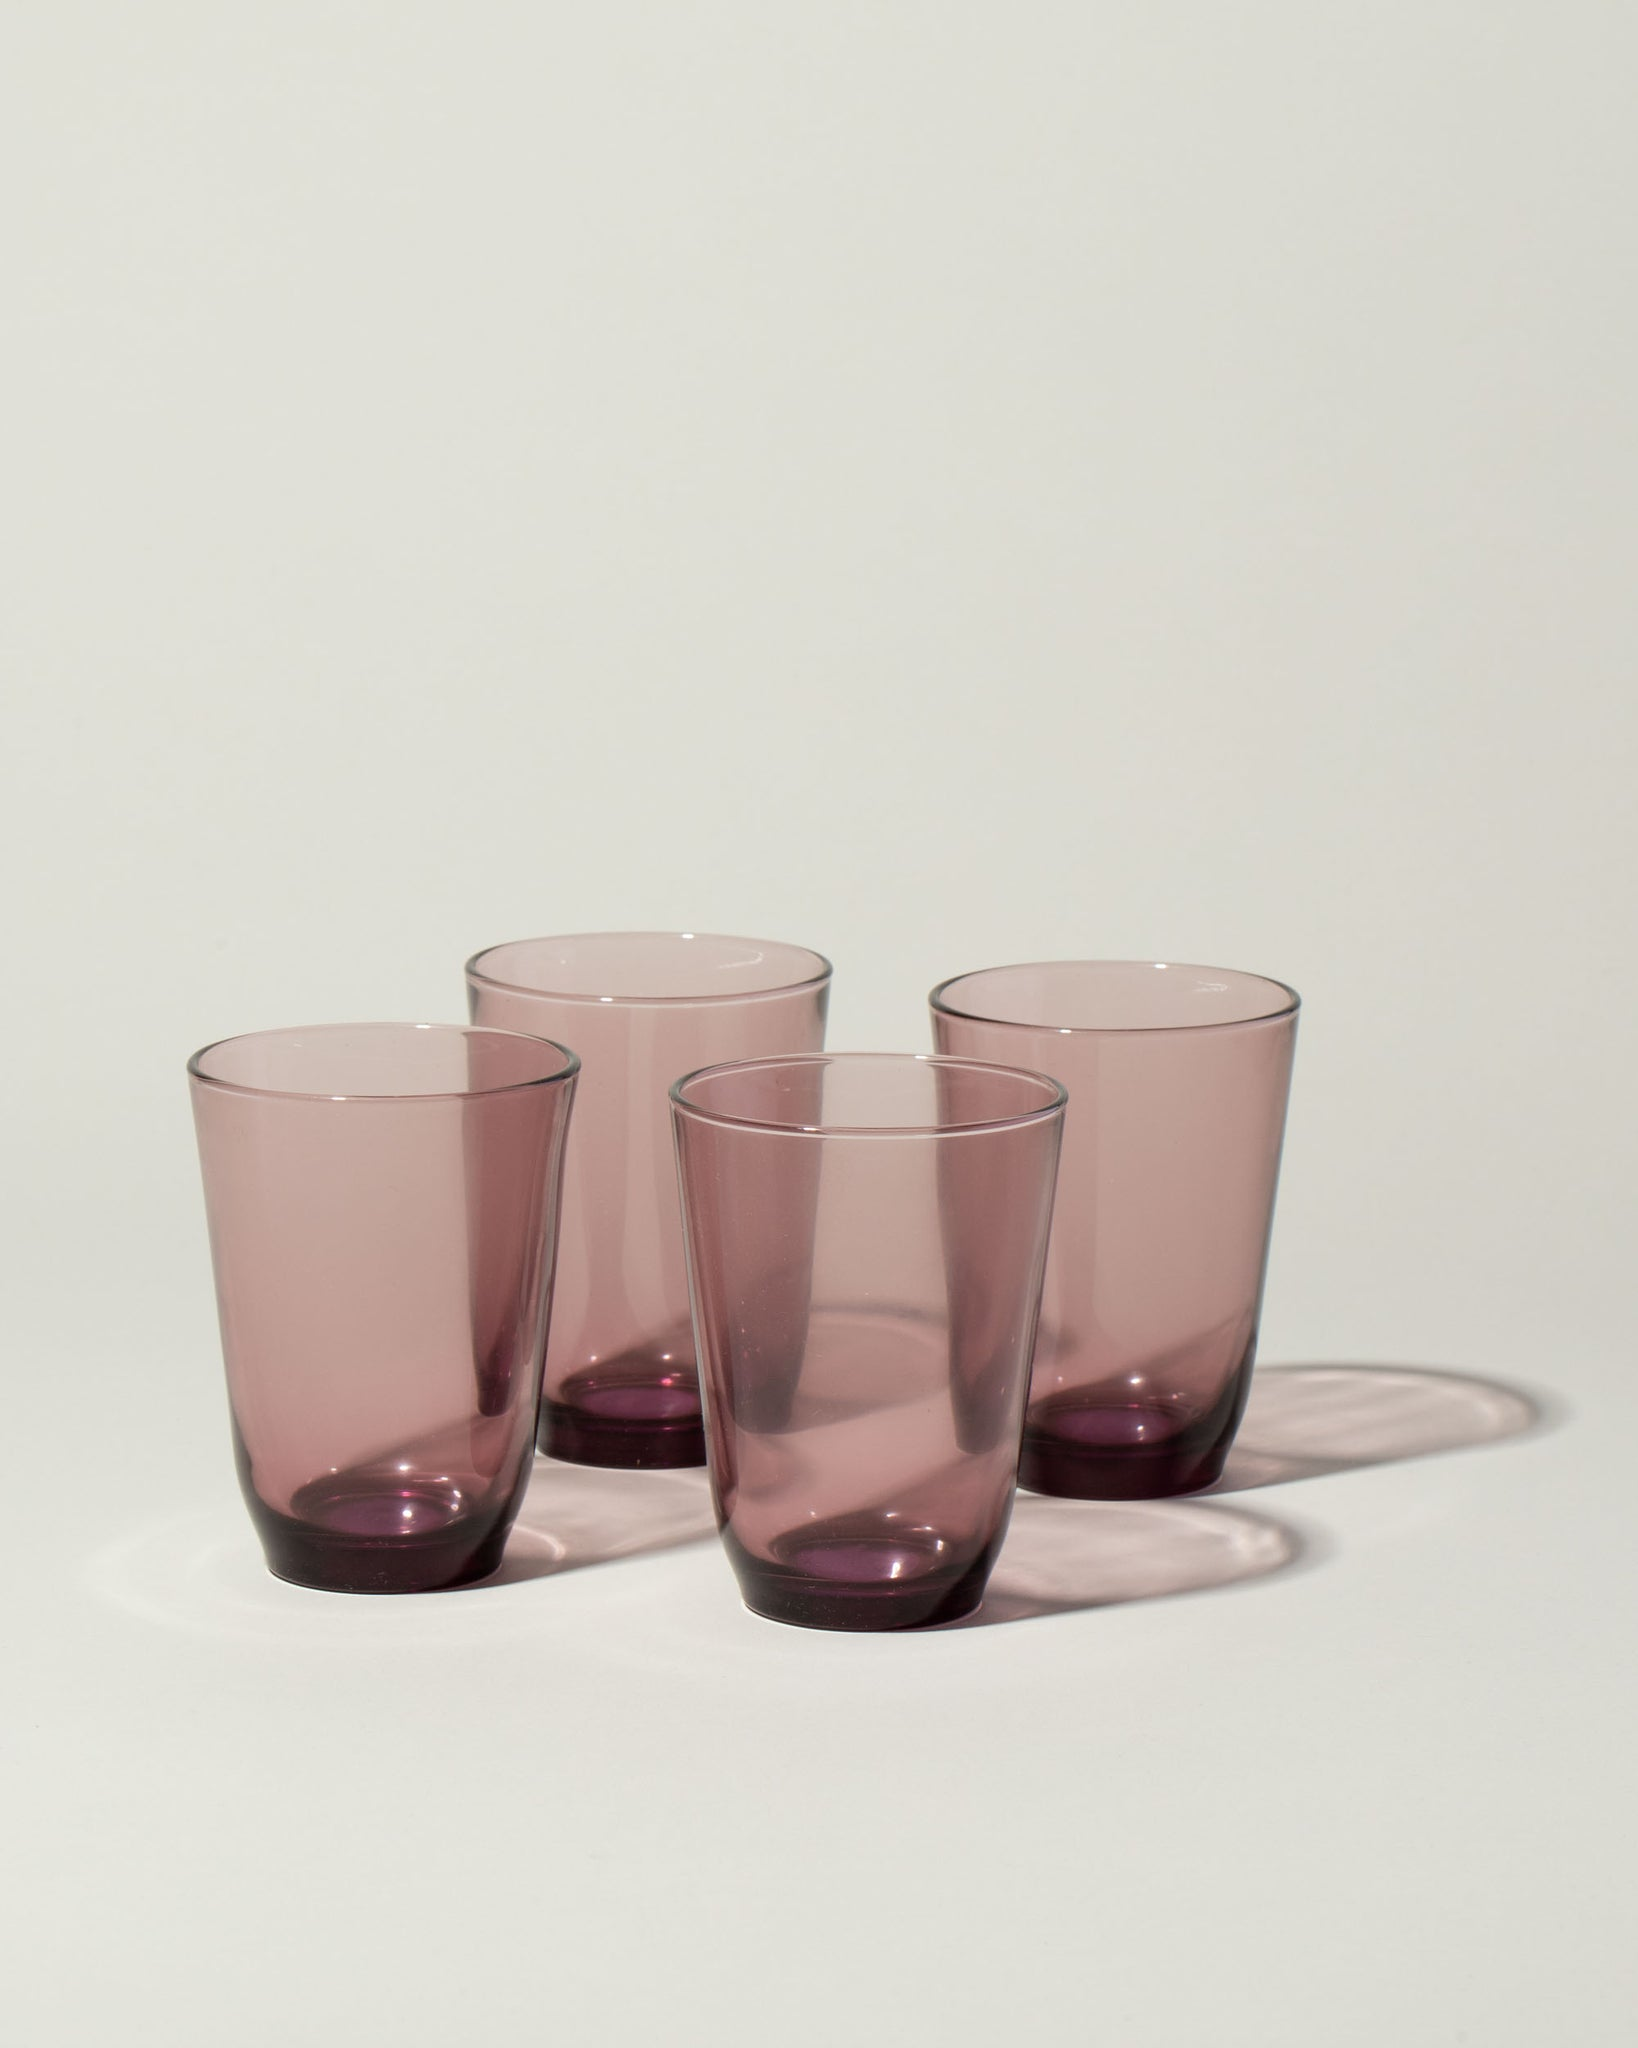 Hibi set of 4 glasses in purple